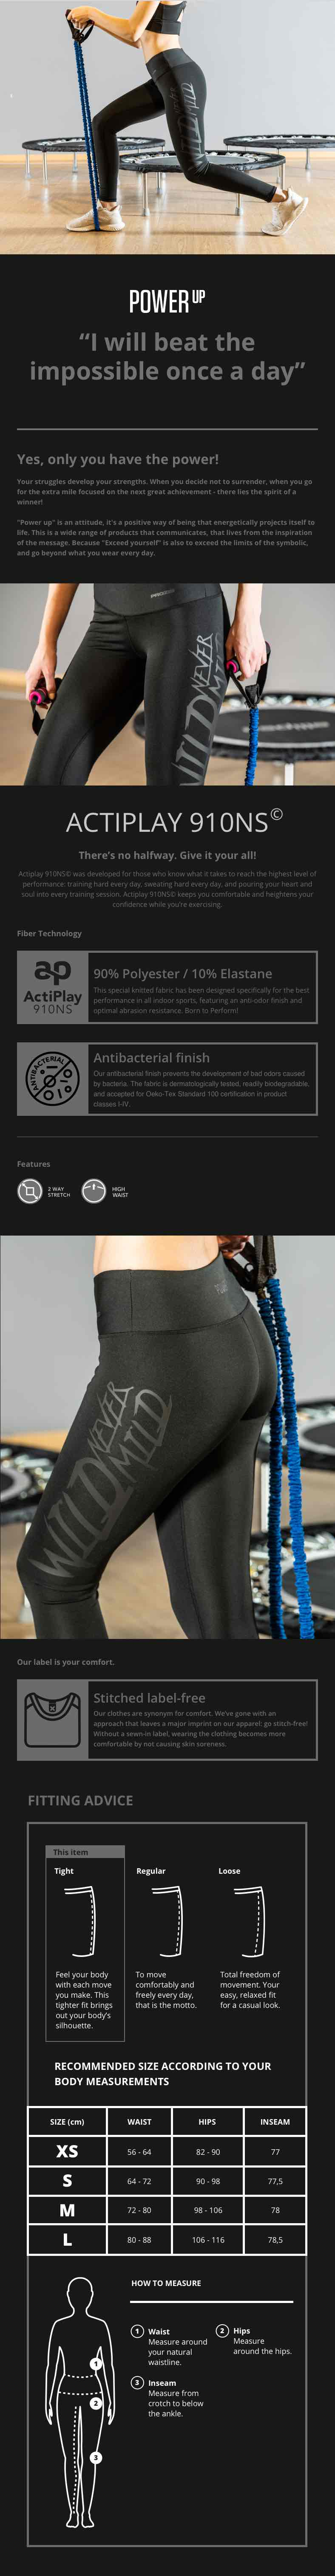 Power Up Leggings - Wild Never Mild - Description